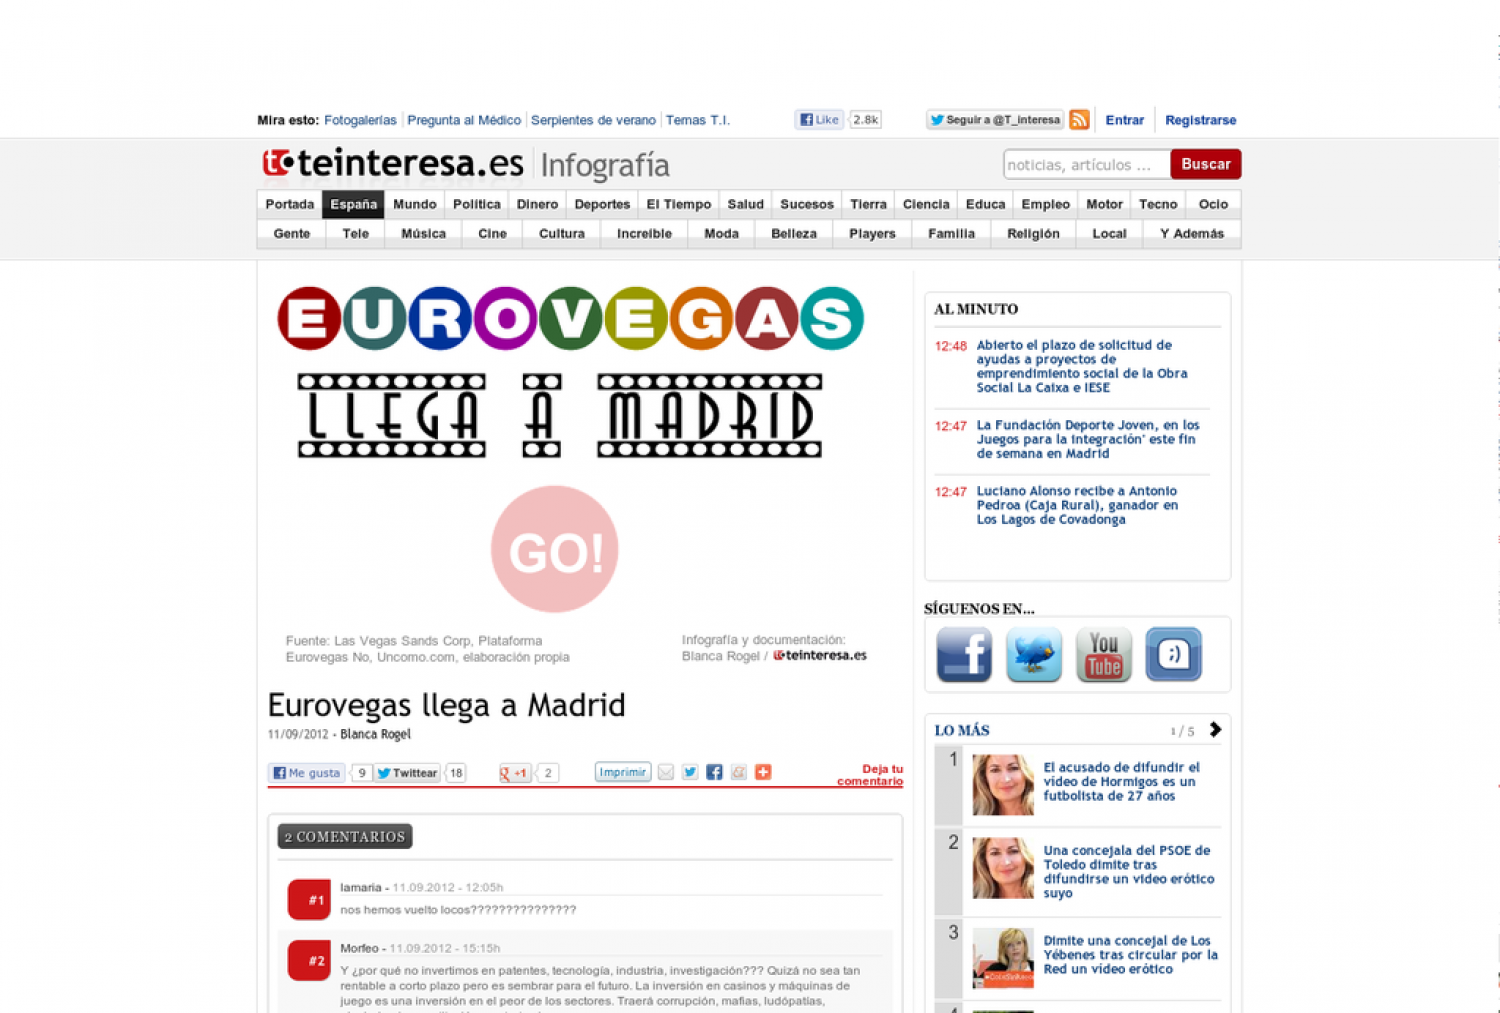 Eurovegas comes to Madrid Infographic